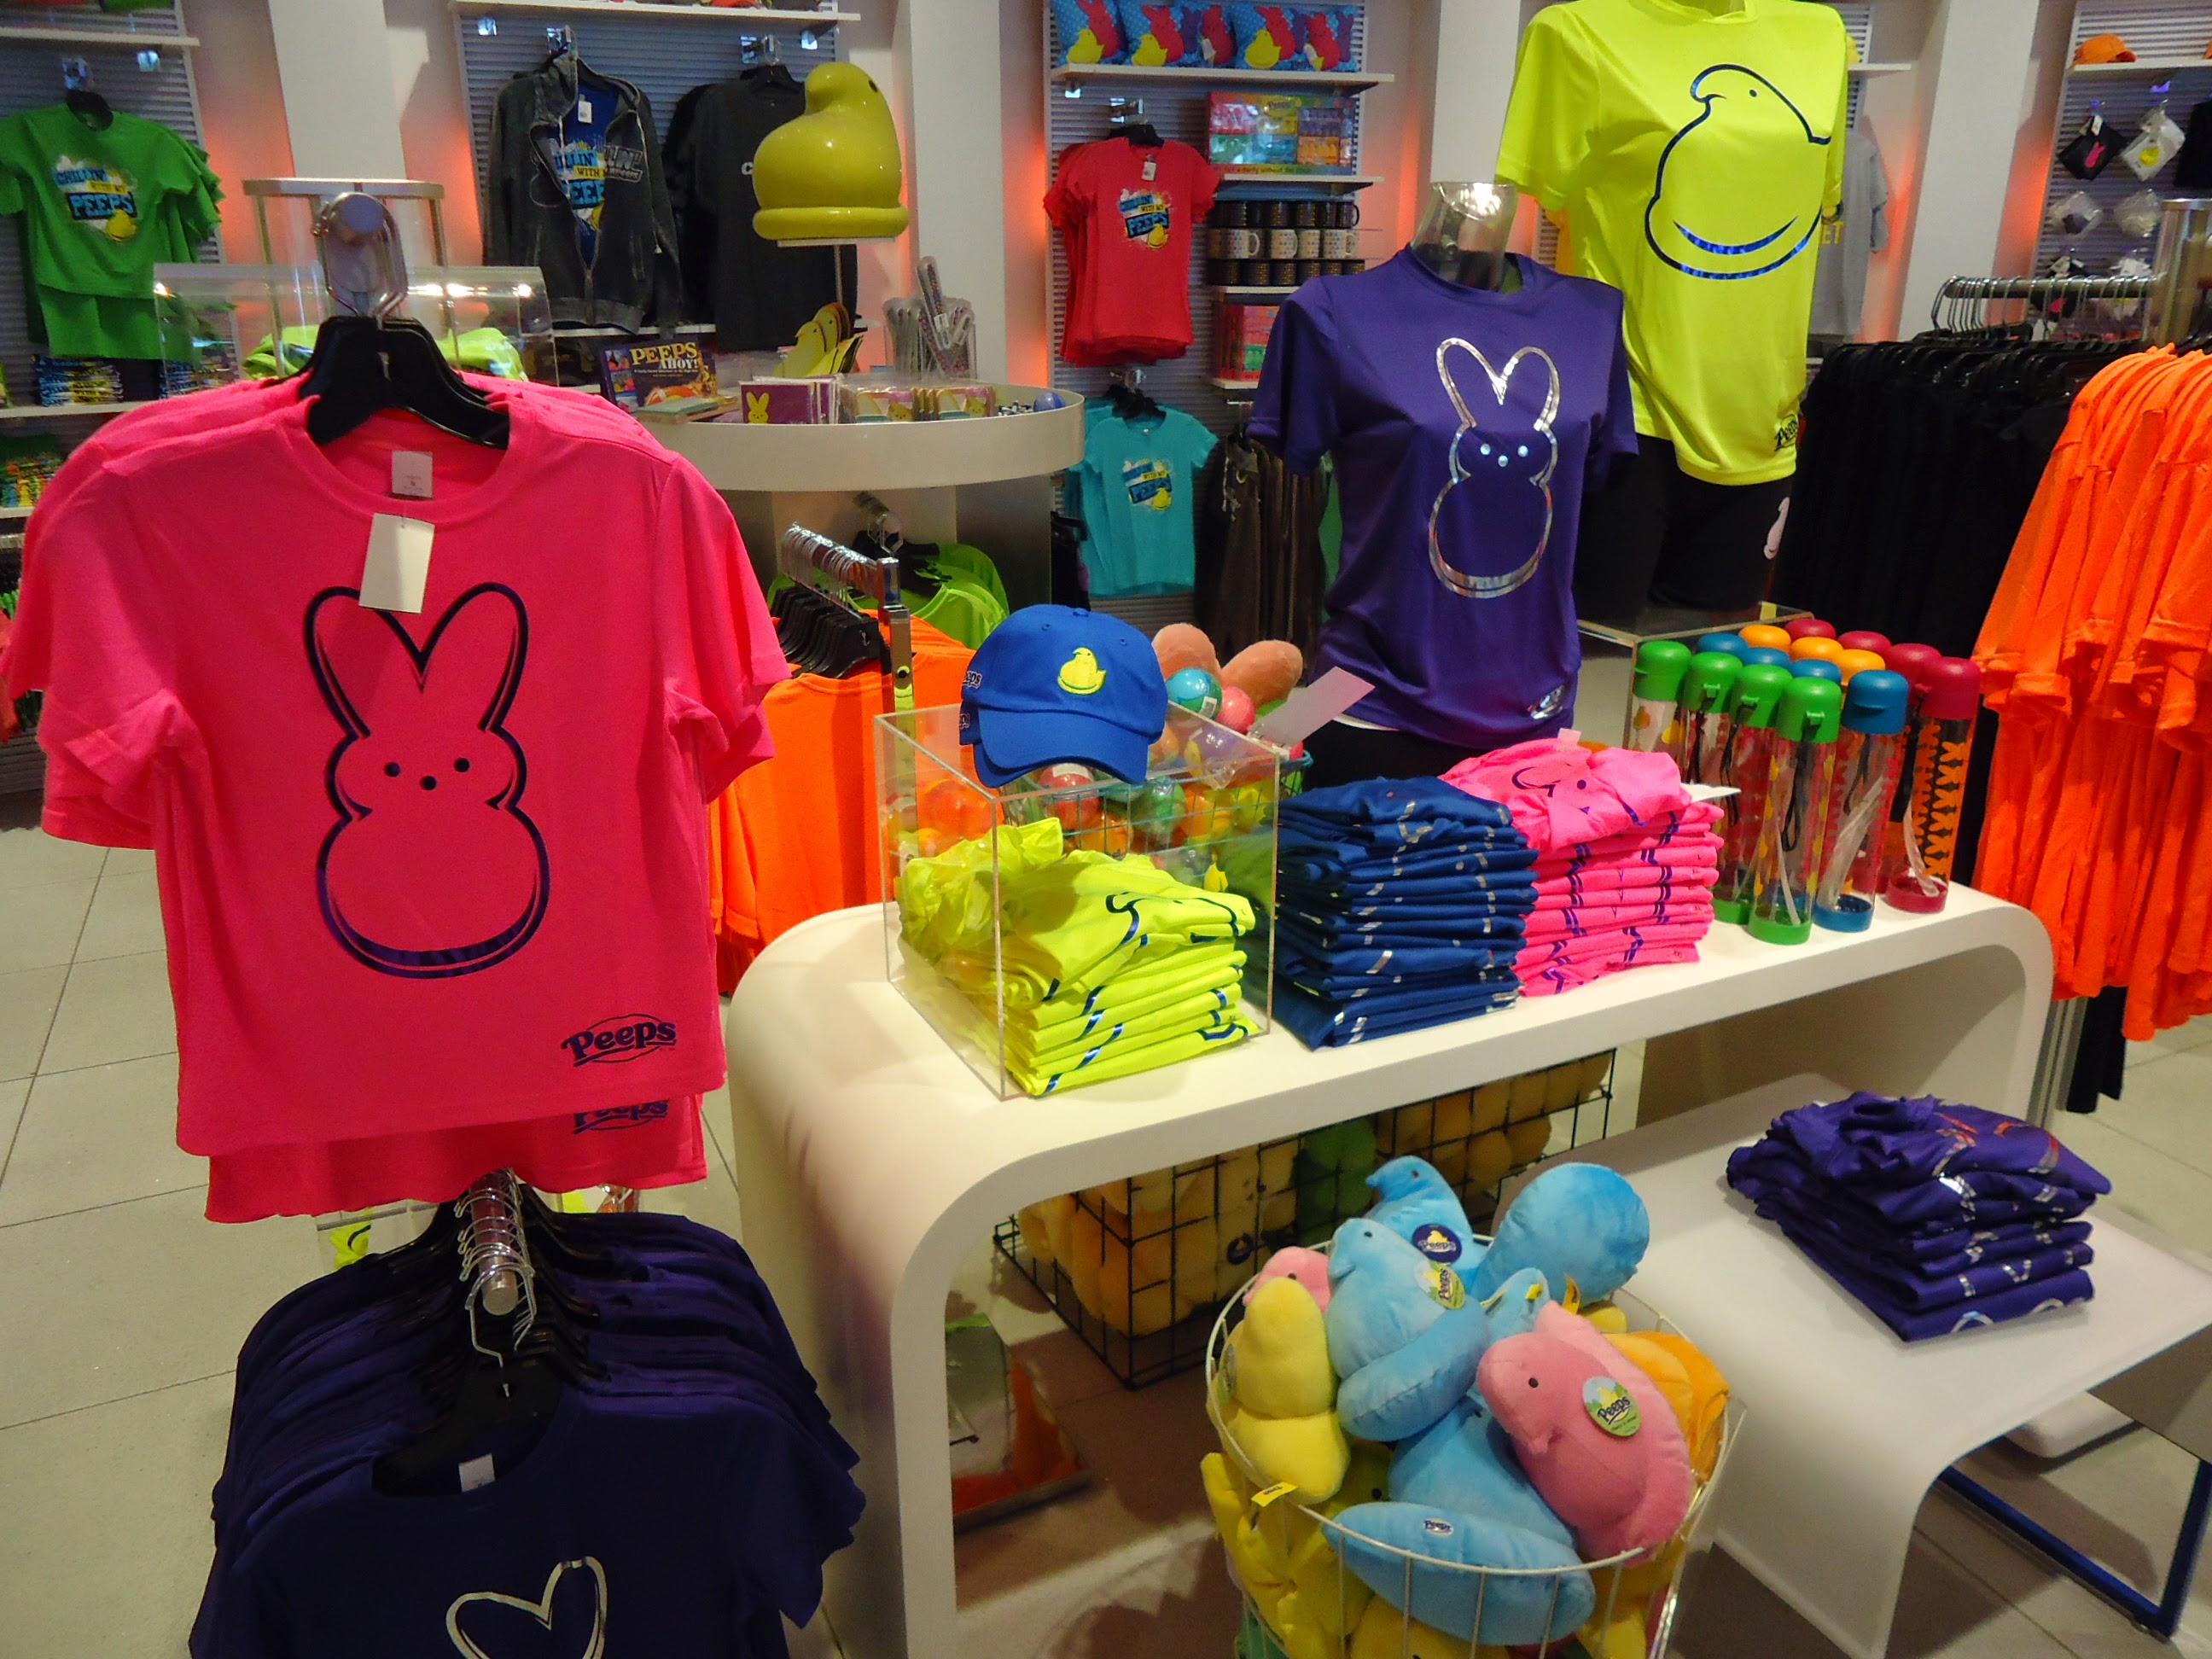 Colorful clothing for sale in a store in maryland